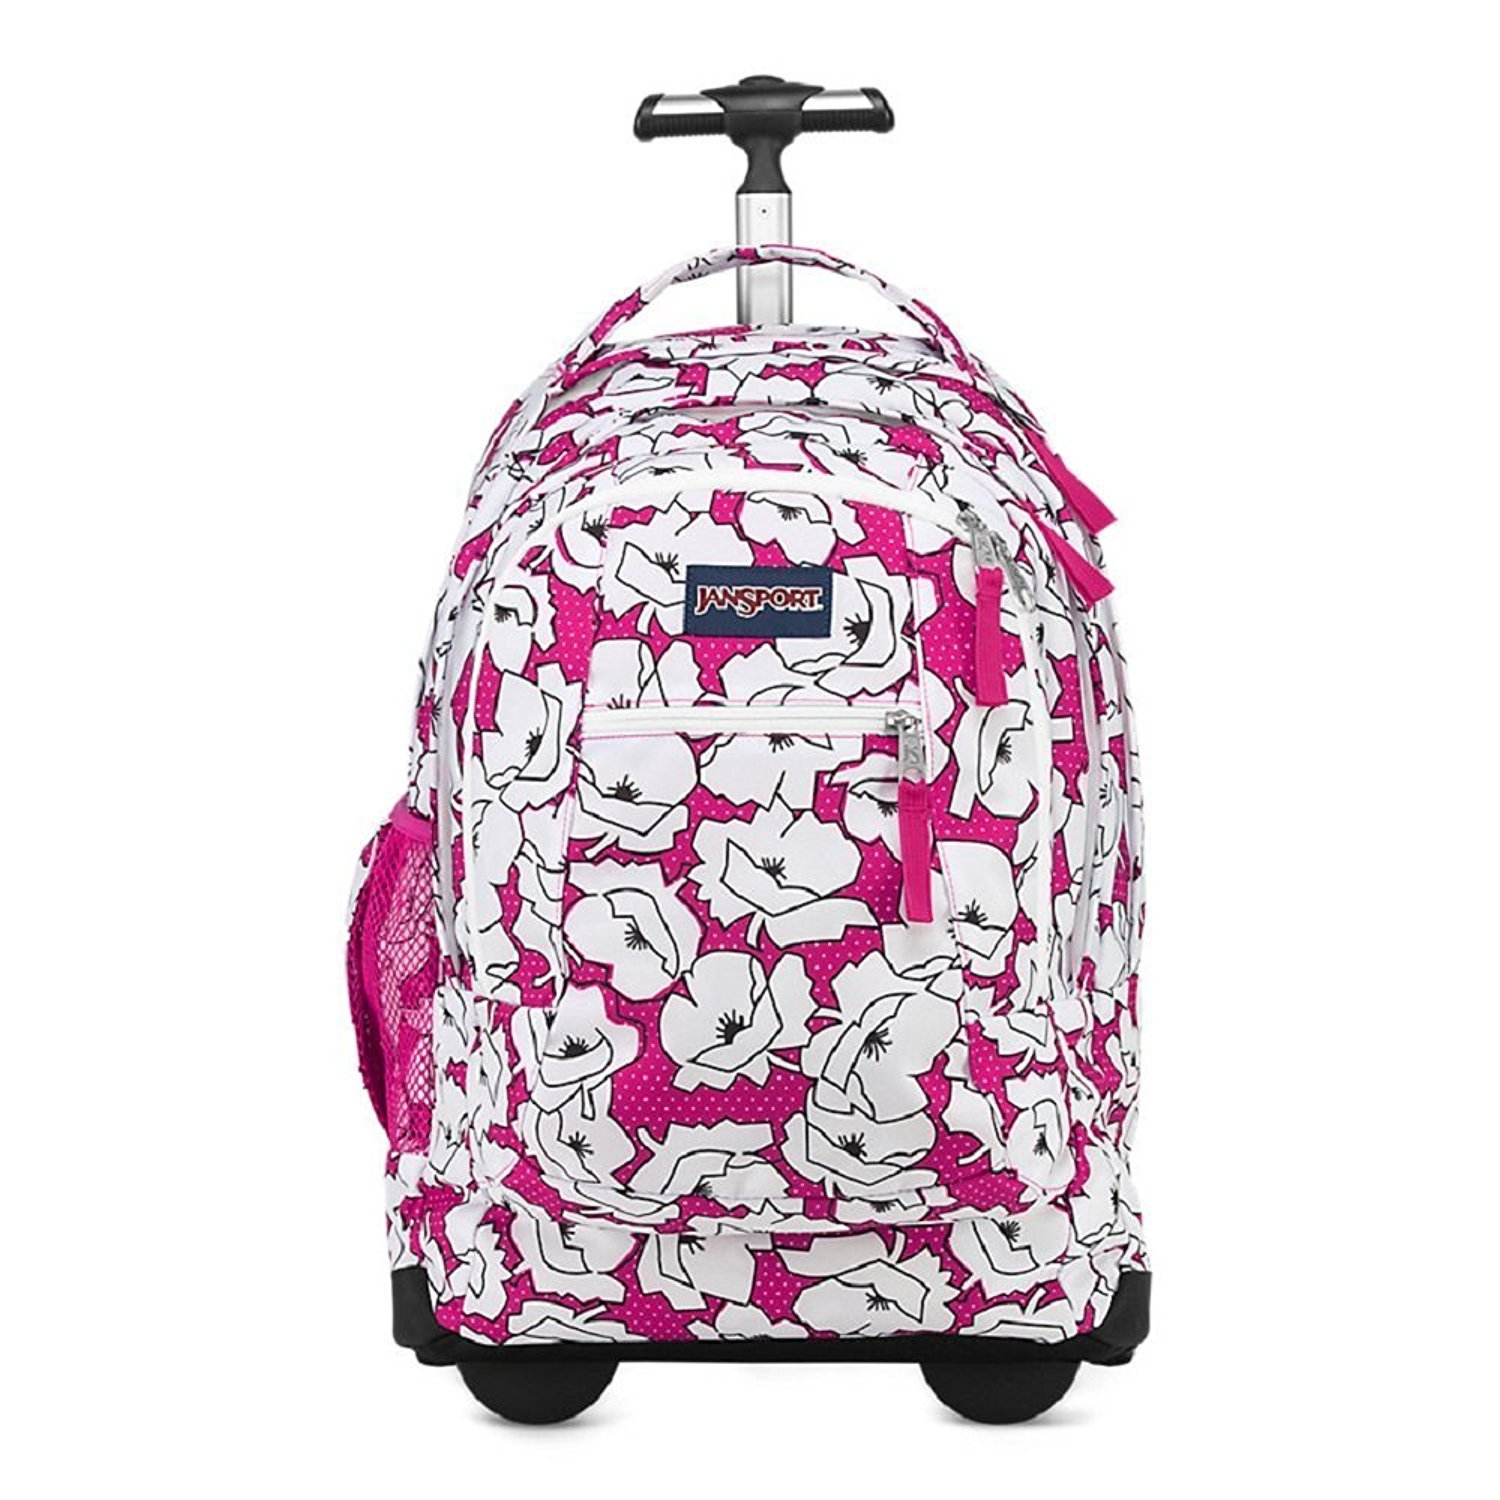 41f09ccc67a92 Get Quotations · JanSport Driver 8 Wheeled Backpack